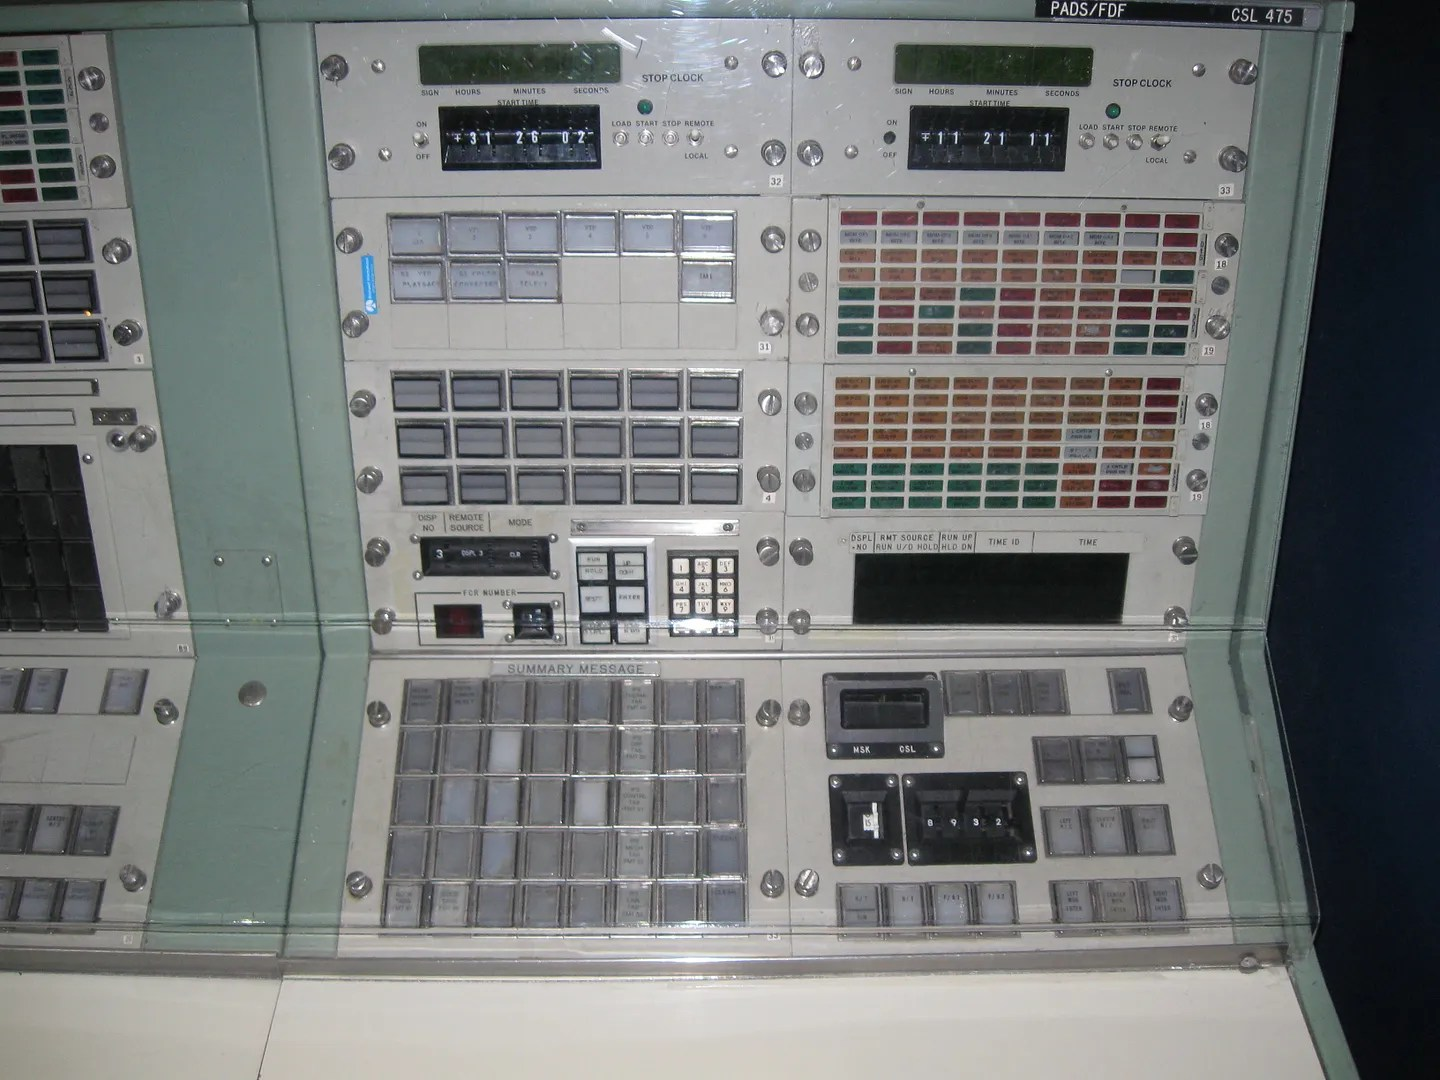 Houston control panel, Kansas Cosmosphere & Space Center, Hutchinson, Kansas